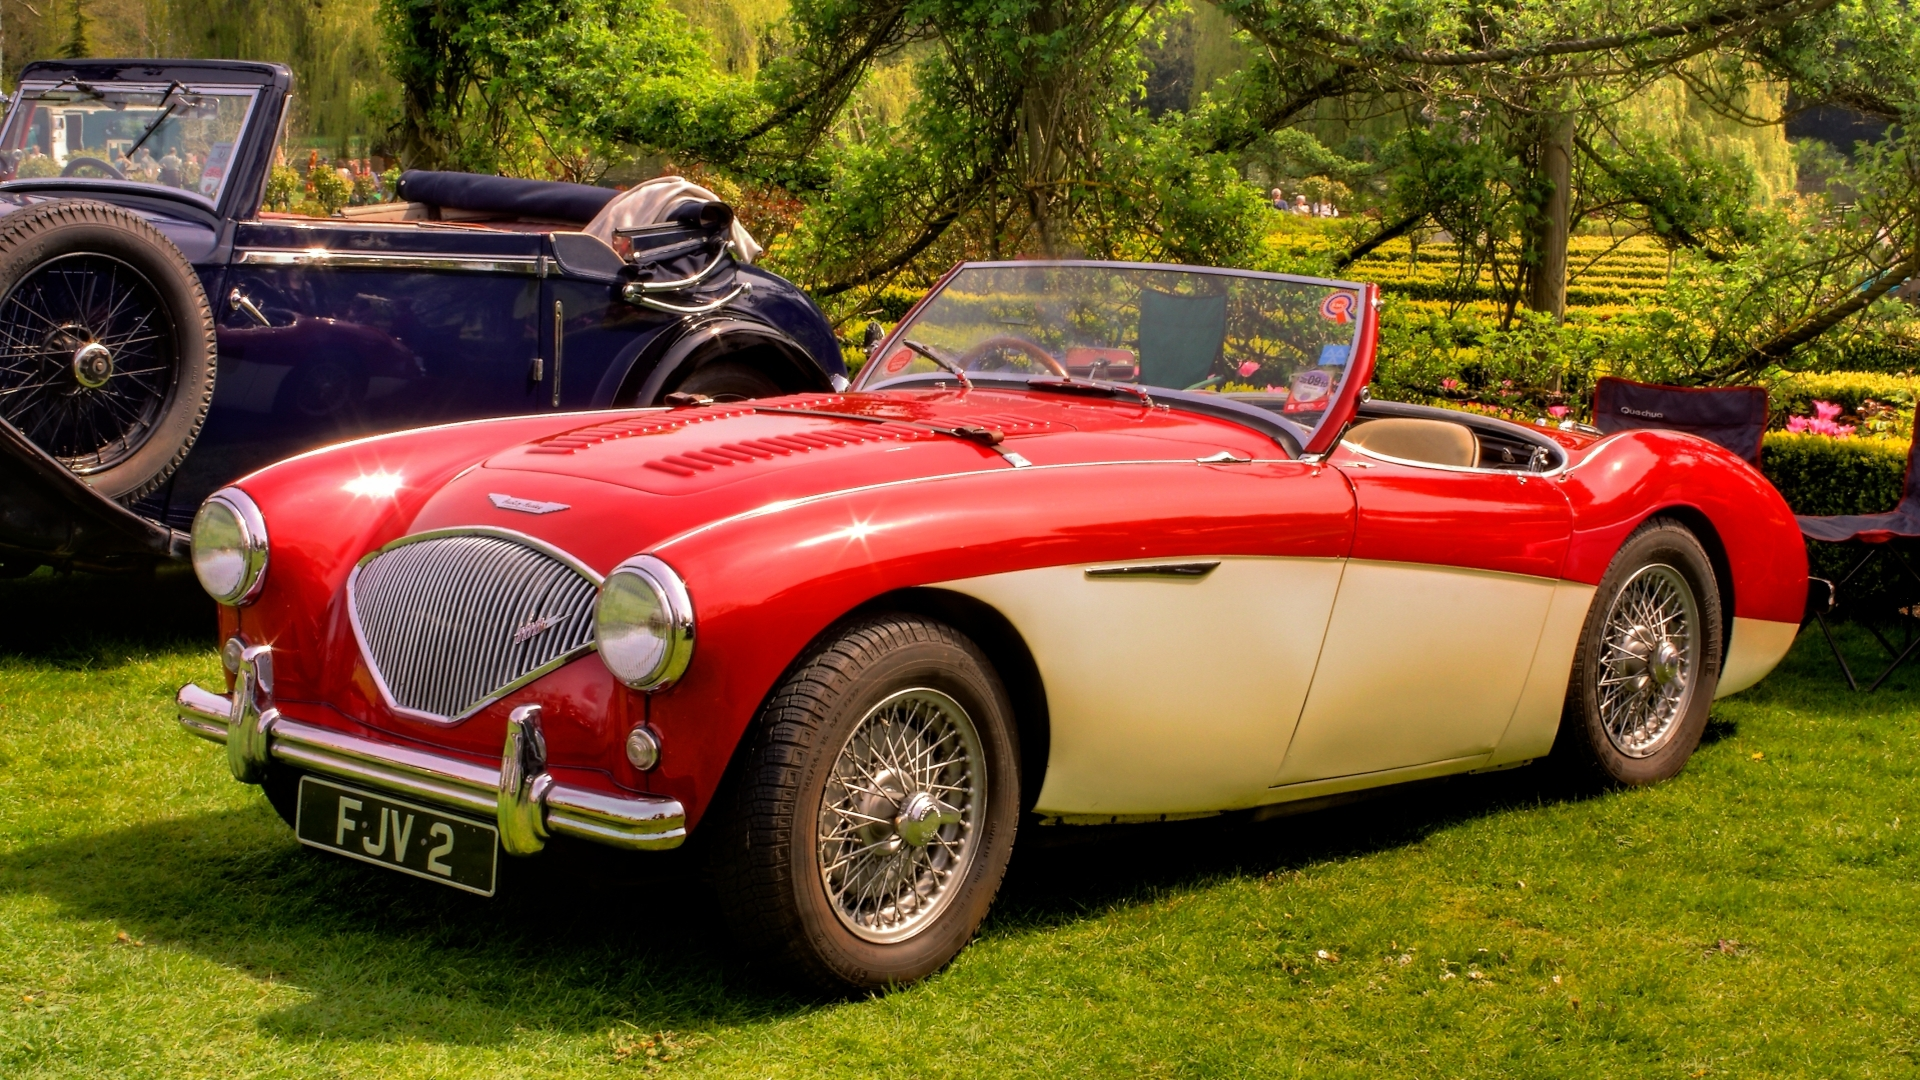 austin healey 100 wallpapers pictures images. Black Bedroom Furniture Sets. Home Design Ideas